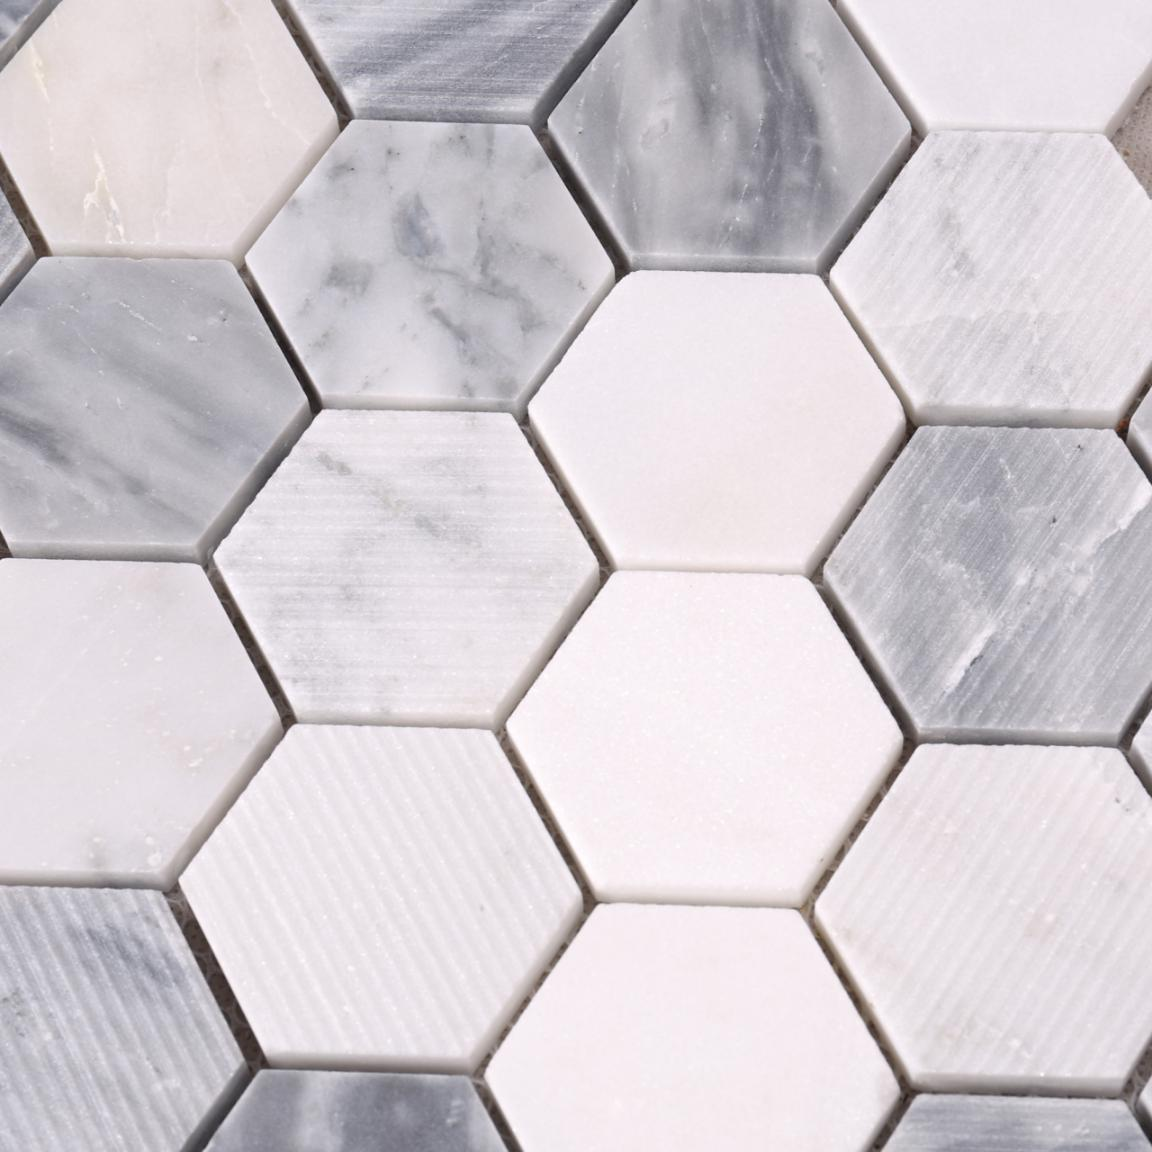 HSC134 Carrara White Hexagon Marble Backsplash Mosaic Tiles